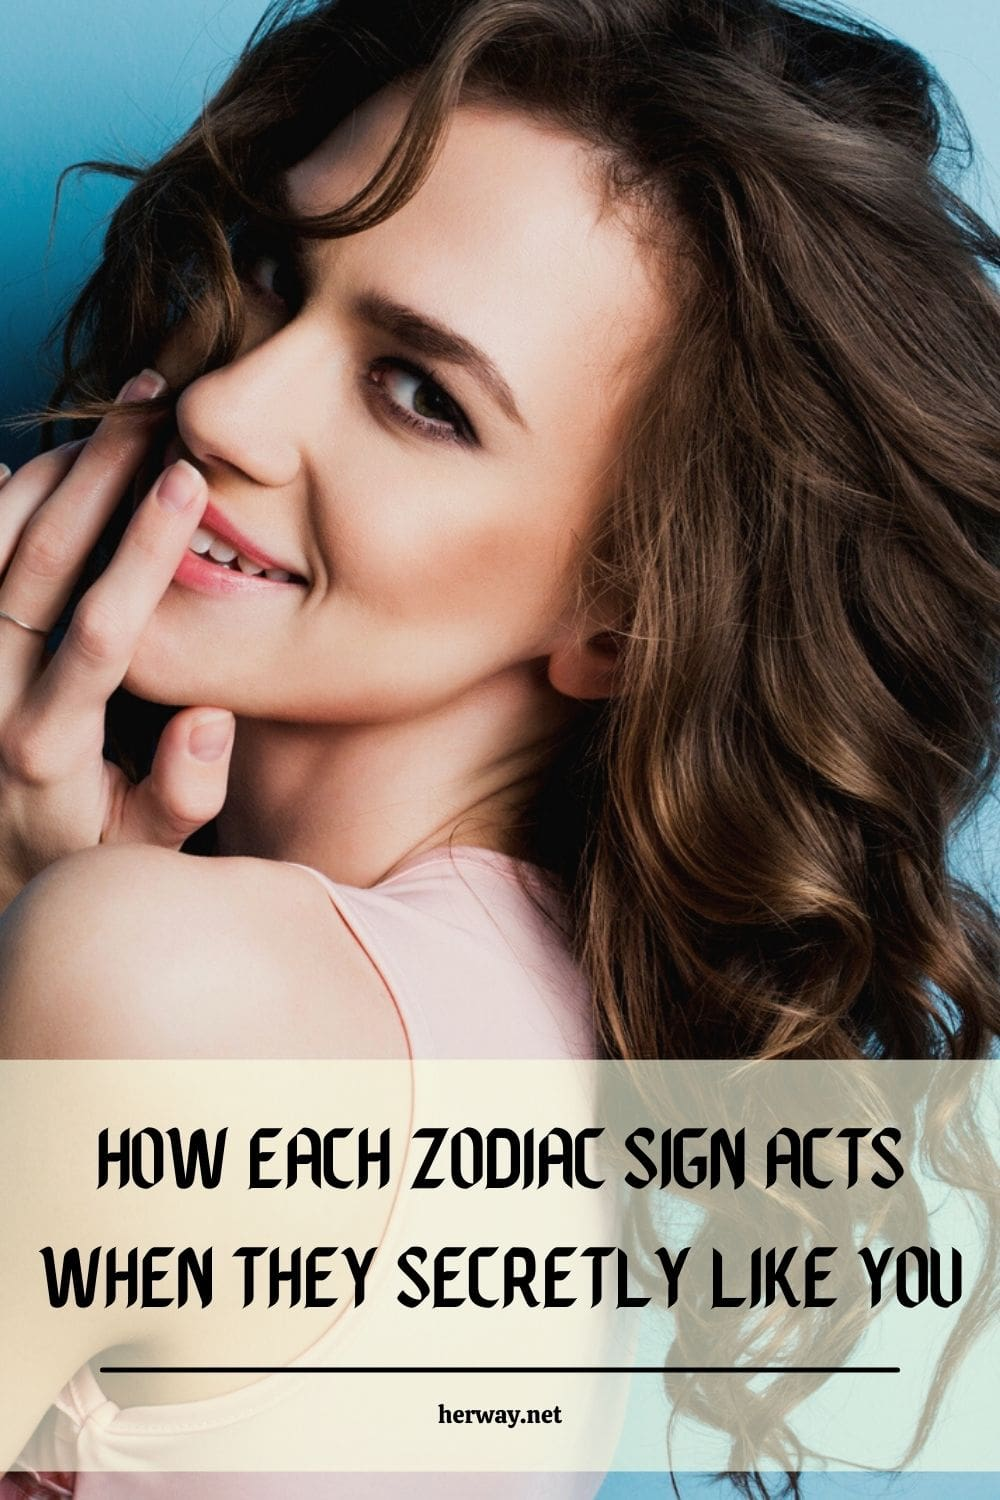 How Each Zodiac Sign Acts When They Secretly Like You